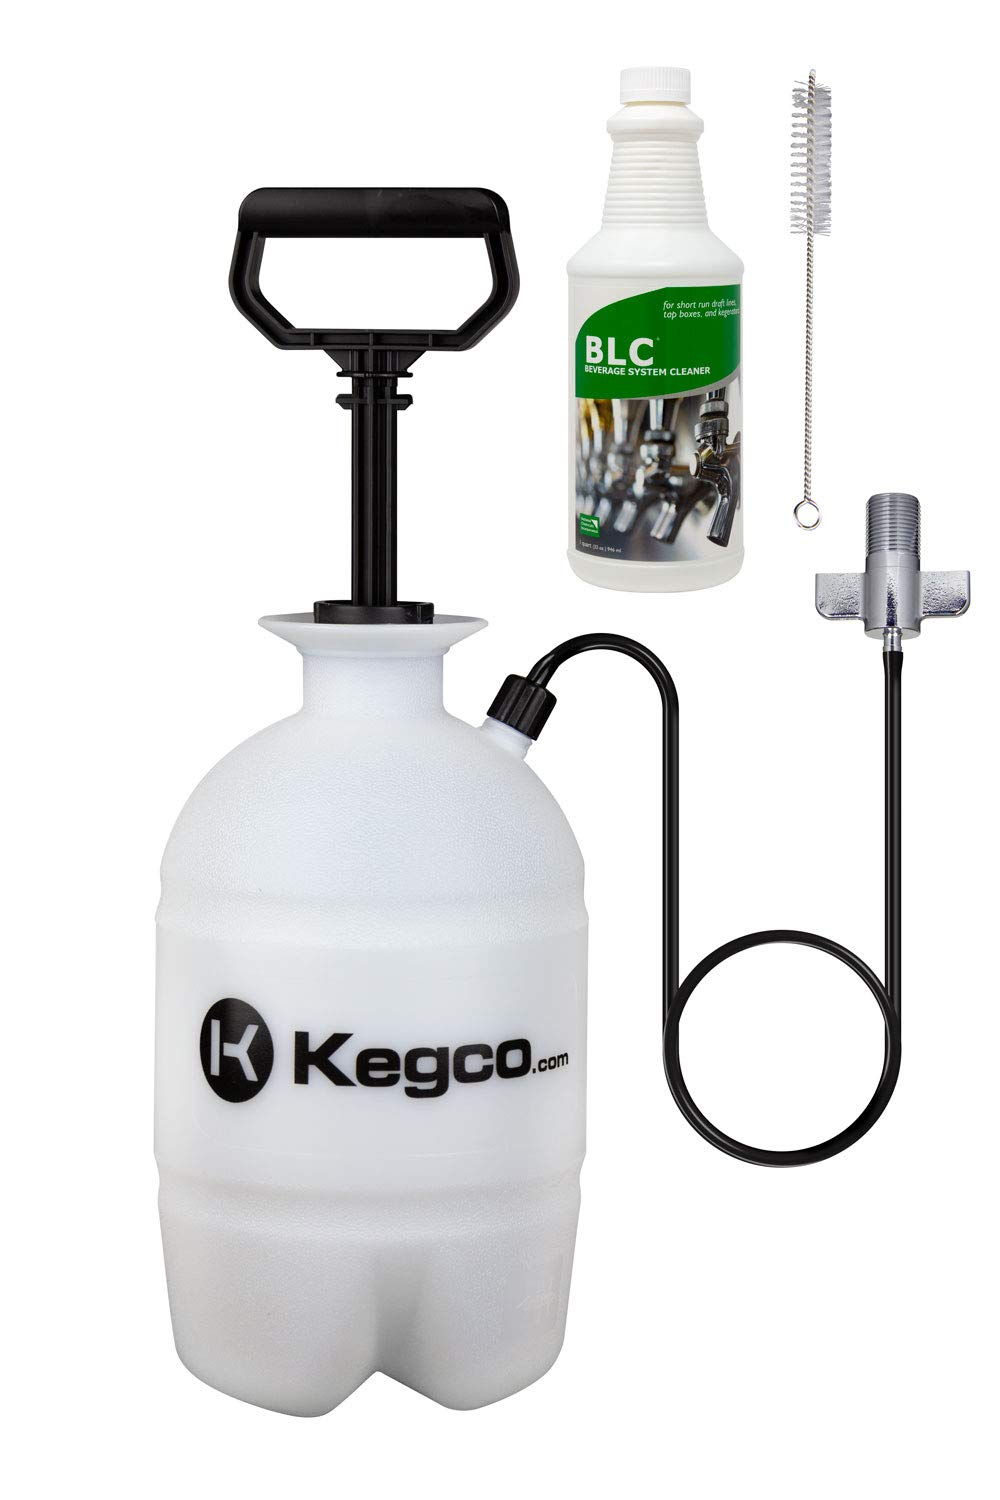 Kegco Deluxe Hand Pump Pressurized Keg Beer Cleaning Kit PCK with 32 Ounce National Chemicals Beer Line Cleaner by Kegco